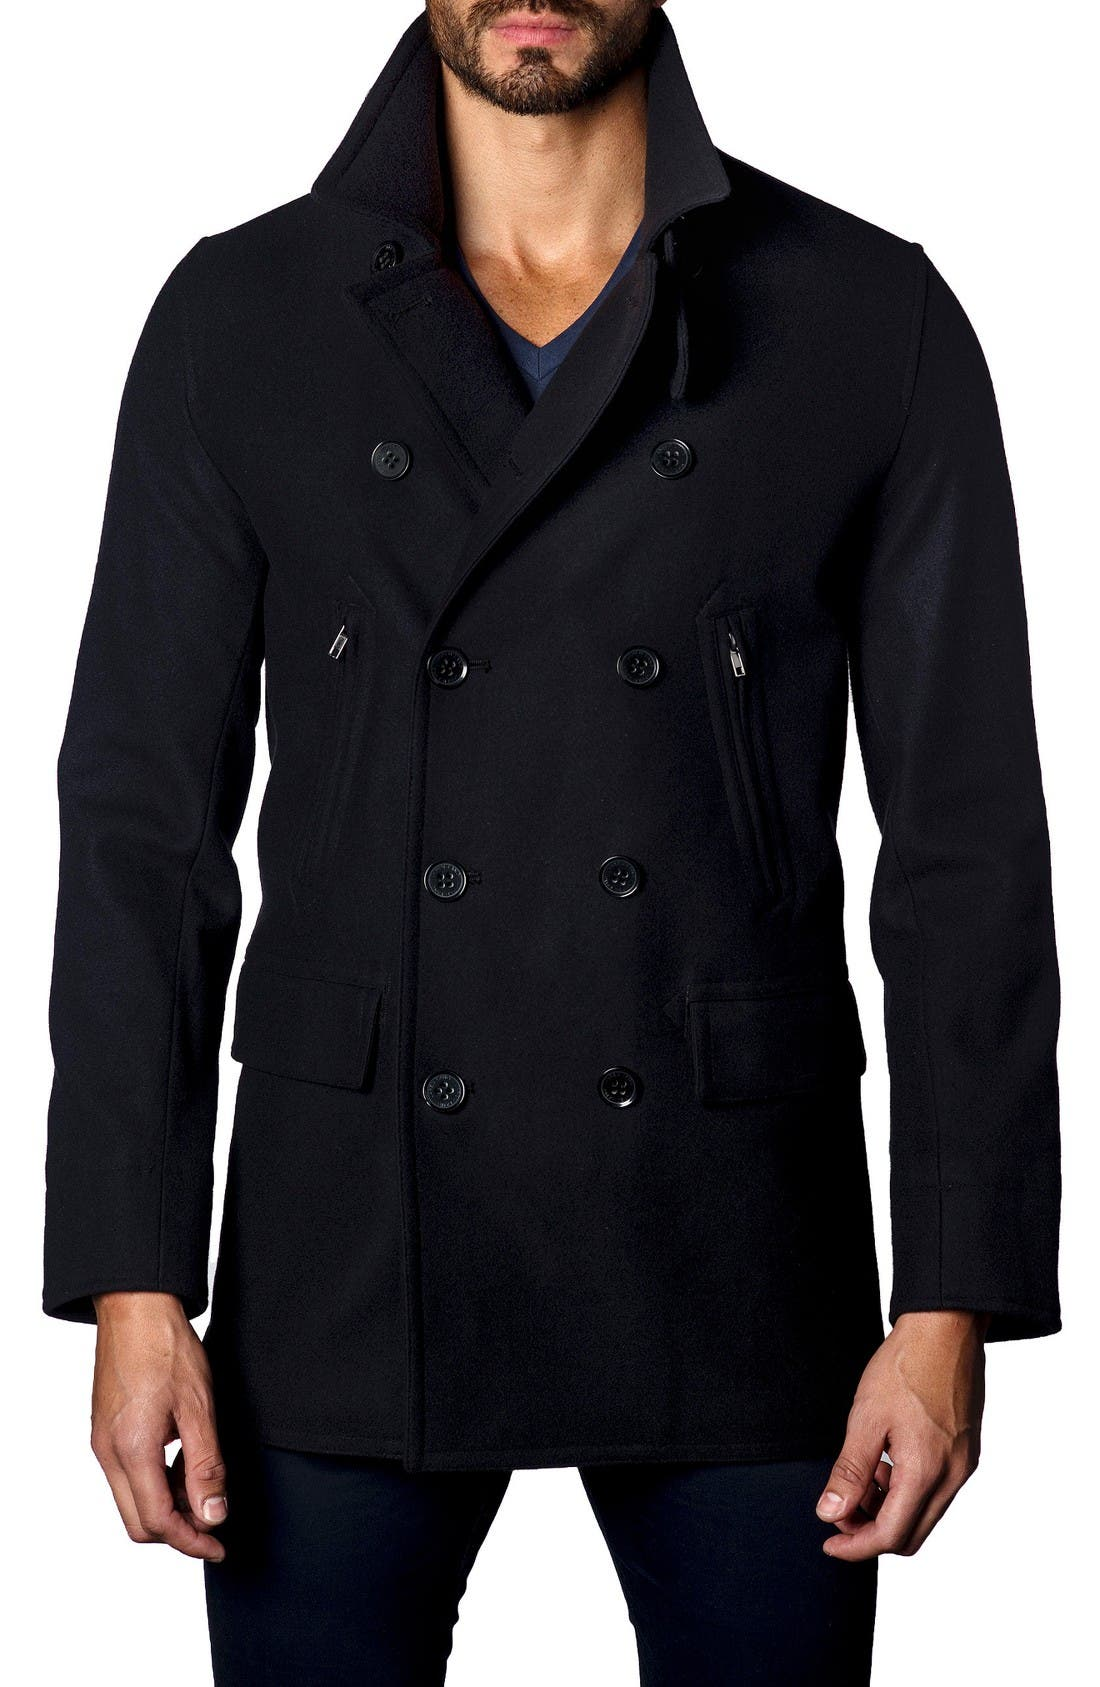 Main Image - Jared Lang Wool Blend Double Breasted Peacoat